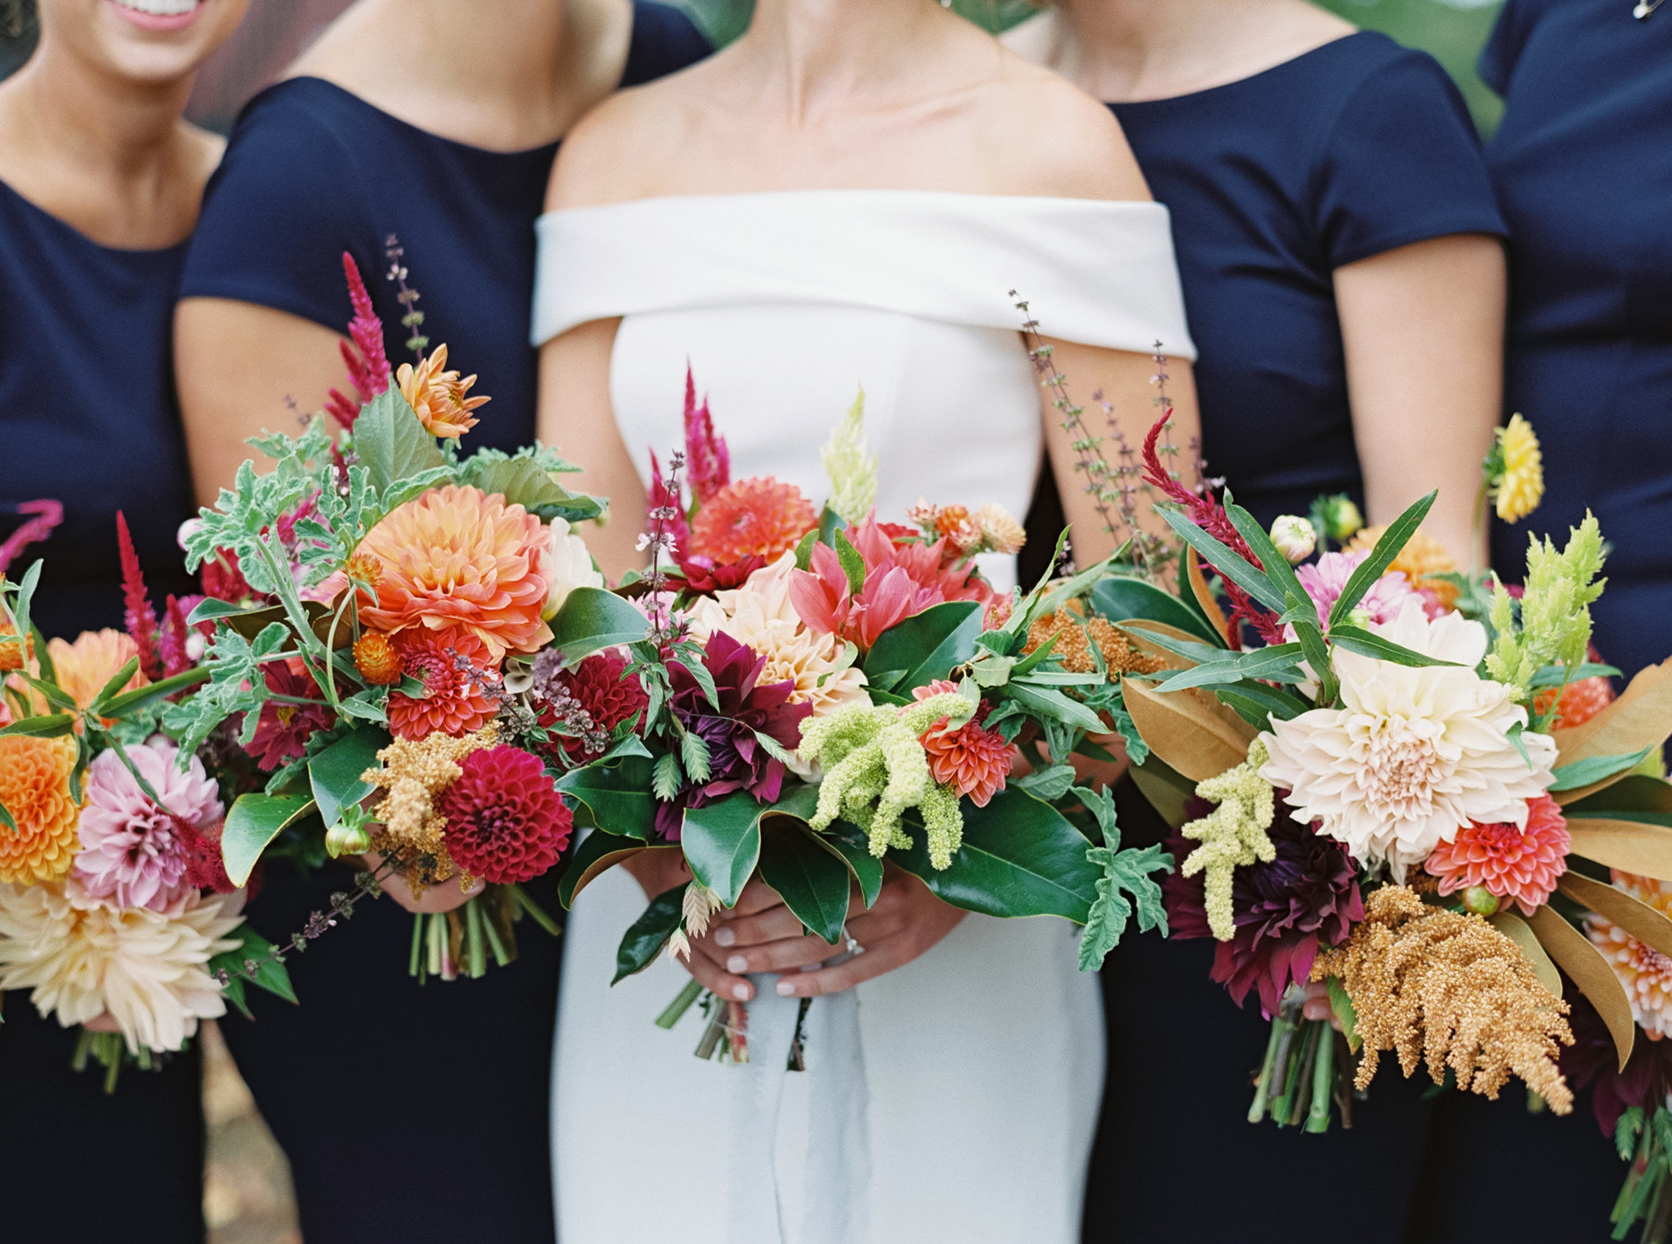 bridal party holding various bright colored floral wedding bouquets